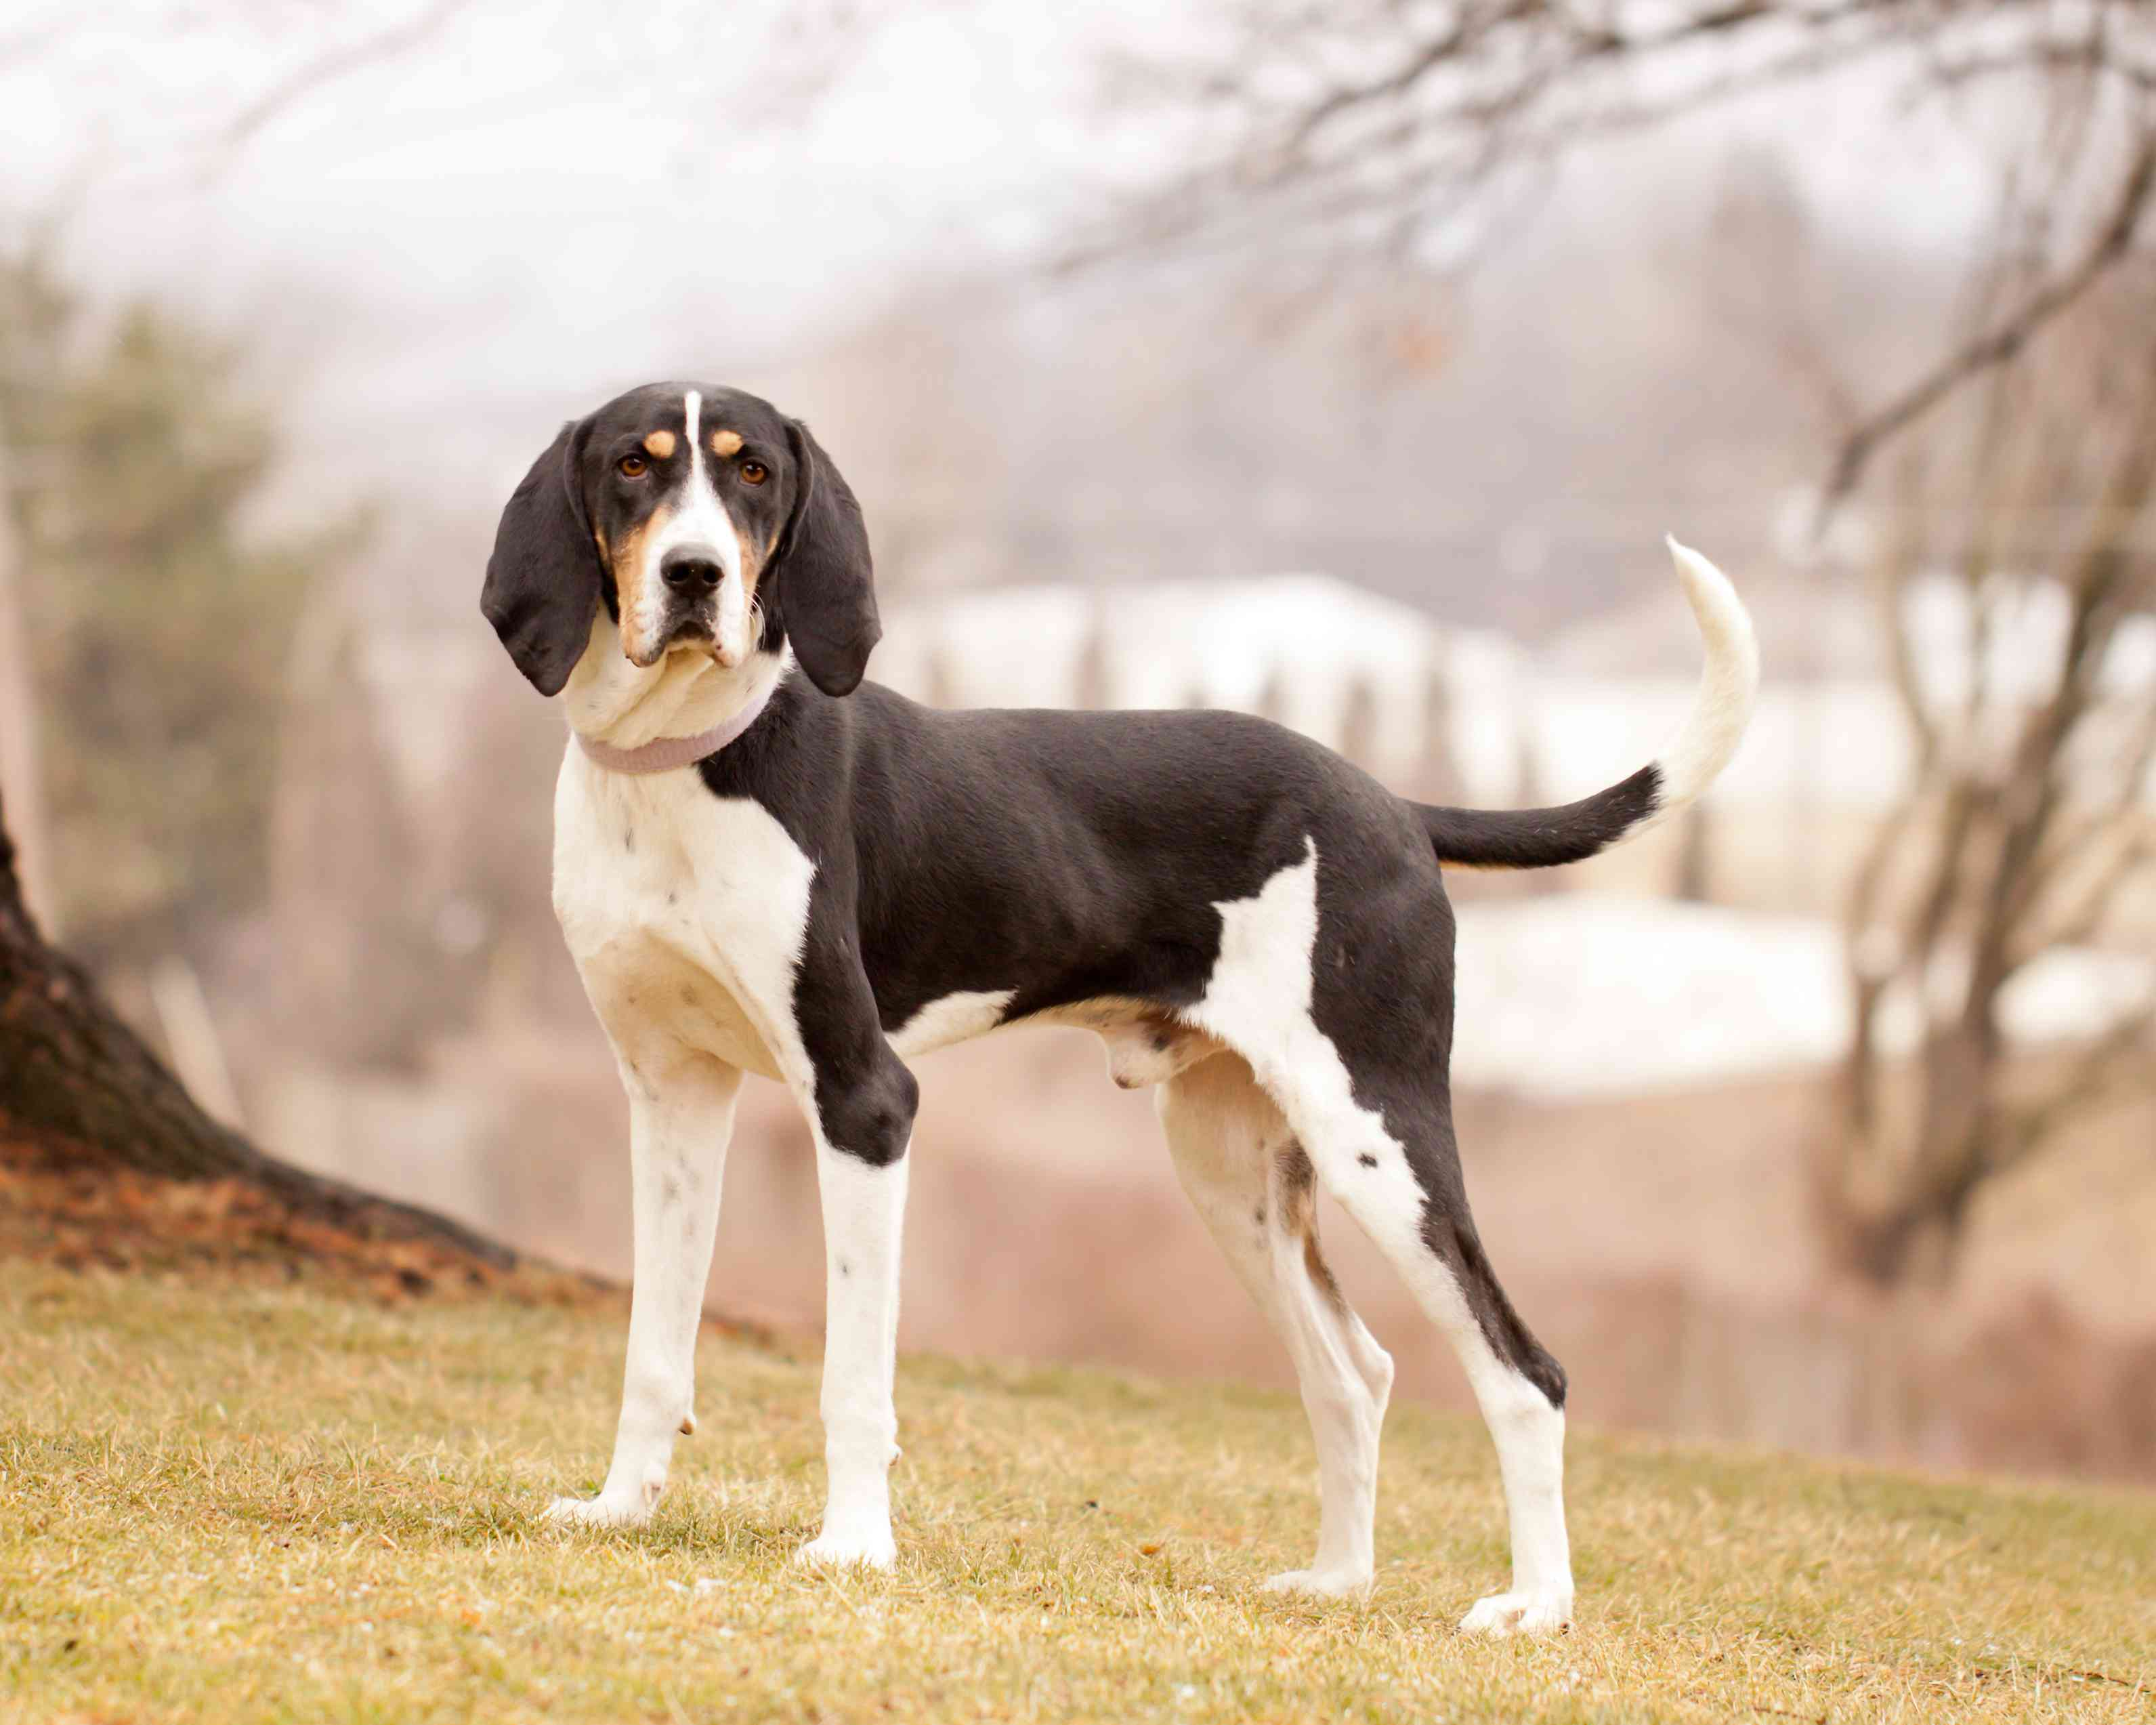 Treeing Walker Coonhound standing outside on grassy hill.